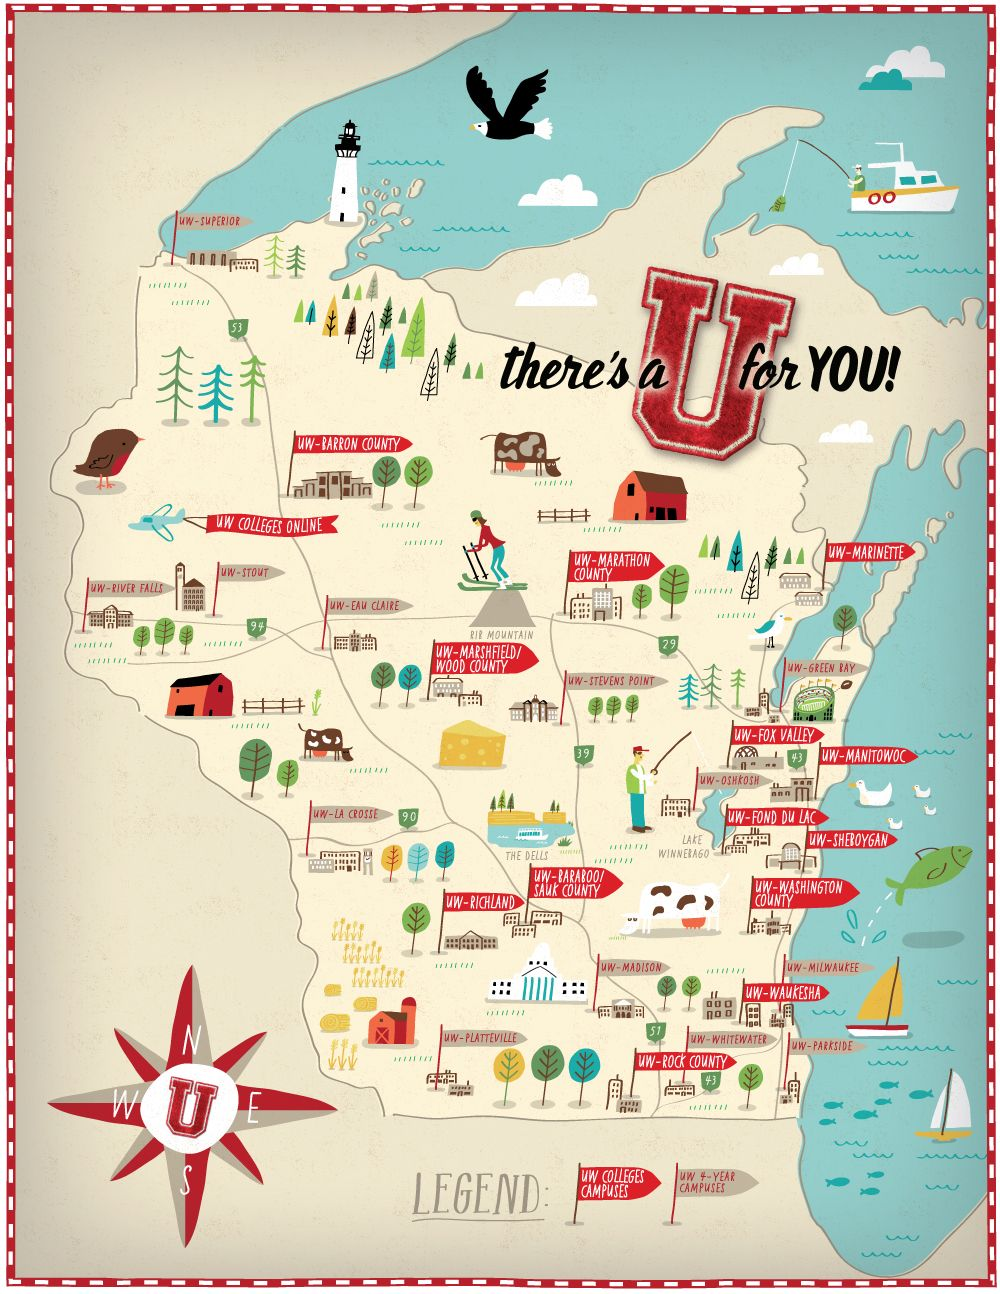 University of Wisconsin Colleges | campus locator map | Info